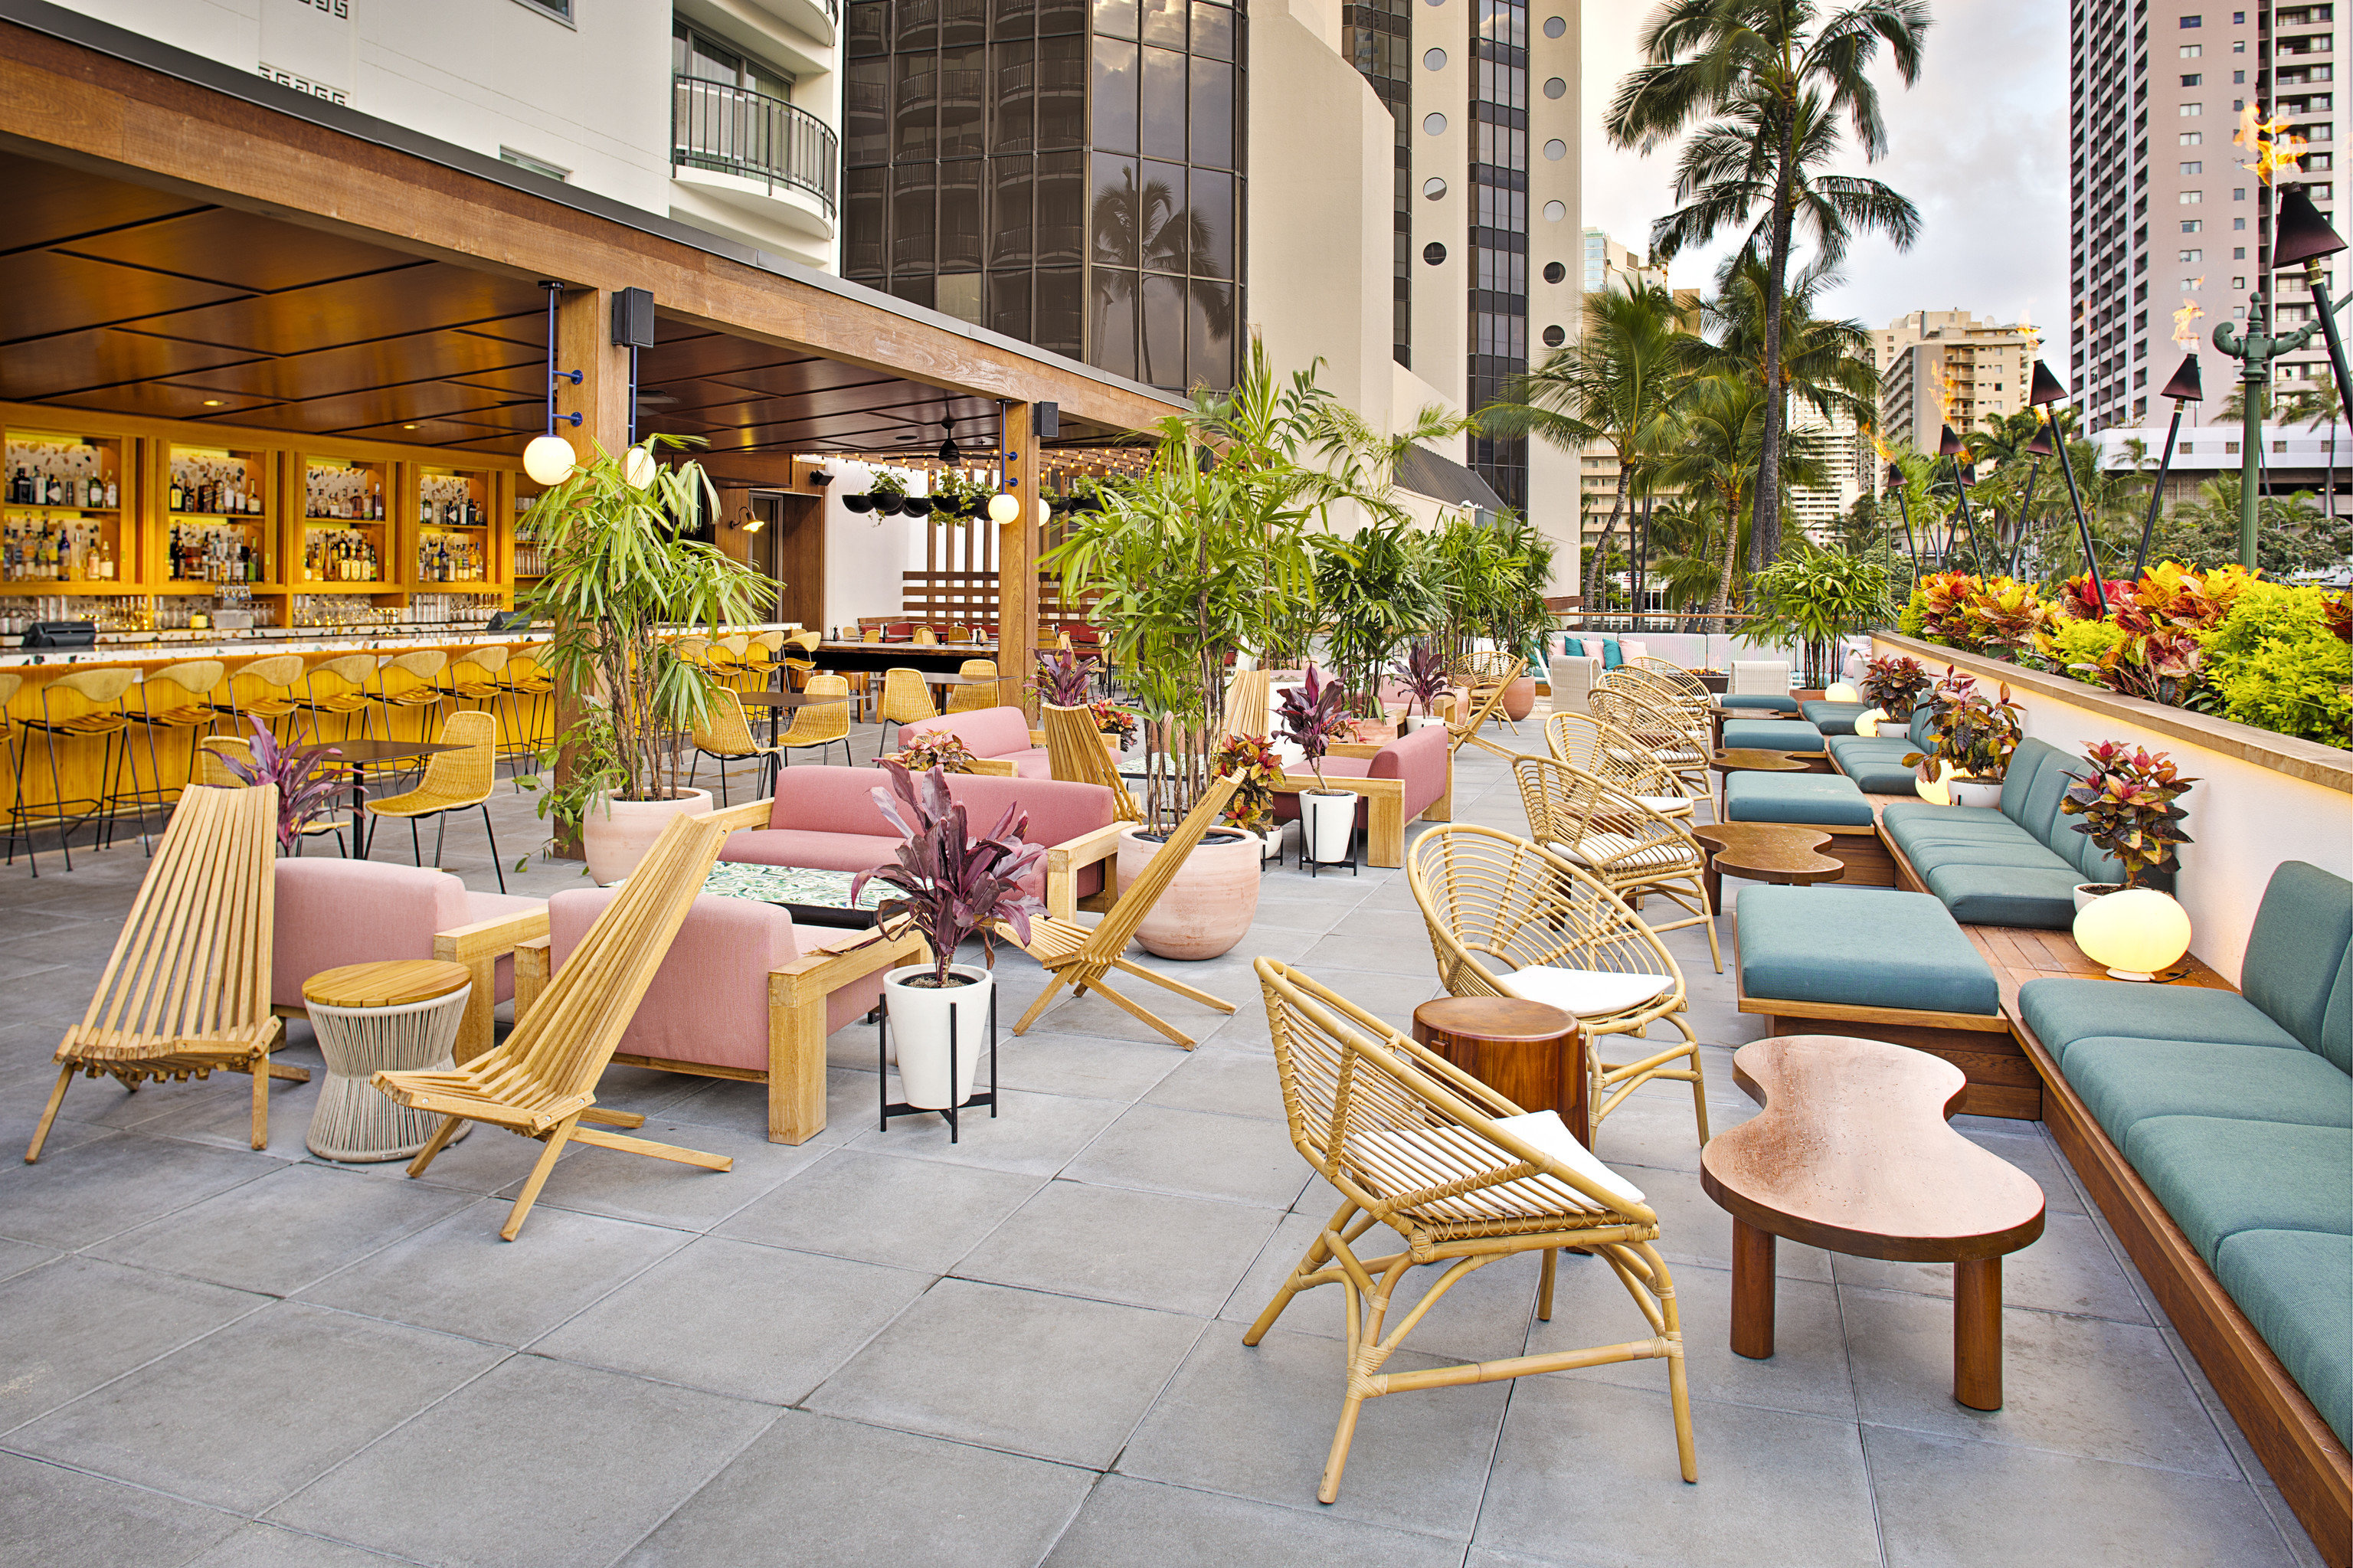 Hotels Romance building table outdoor chair furniture Patio real estate outdoor structure Resort mixed use interior design apartment outdoor furniture leisure Balcony condominium roof